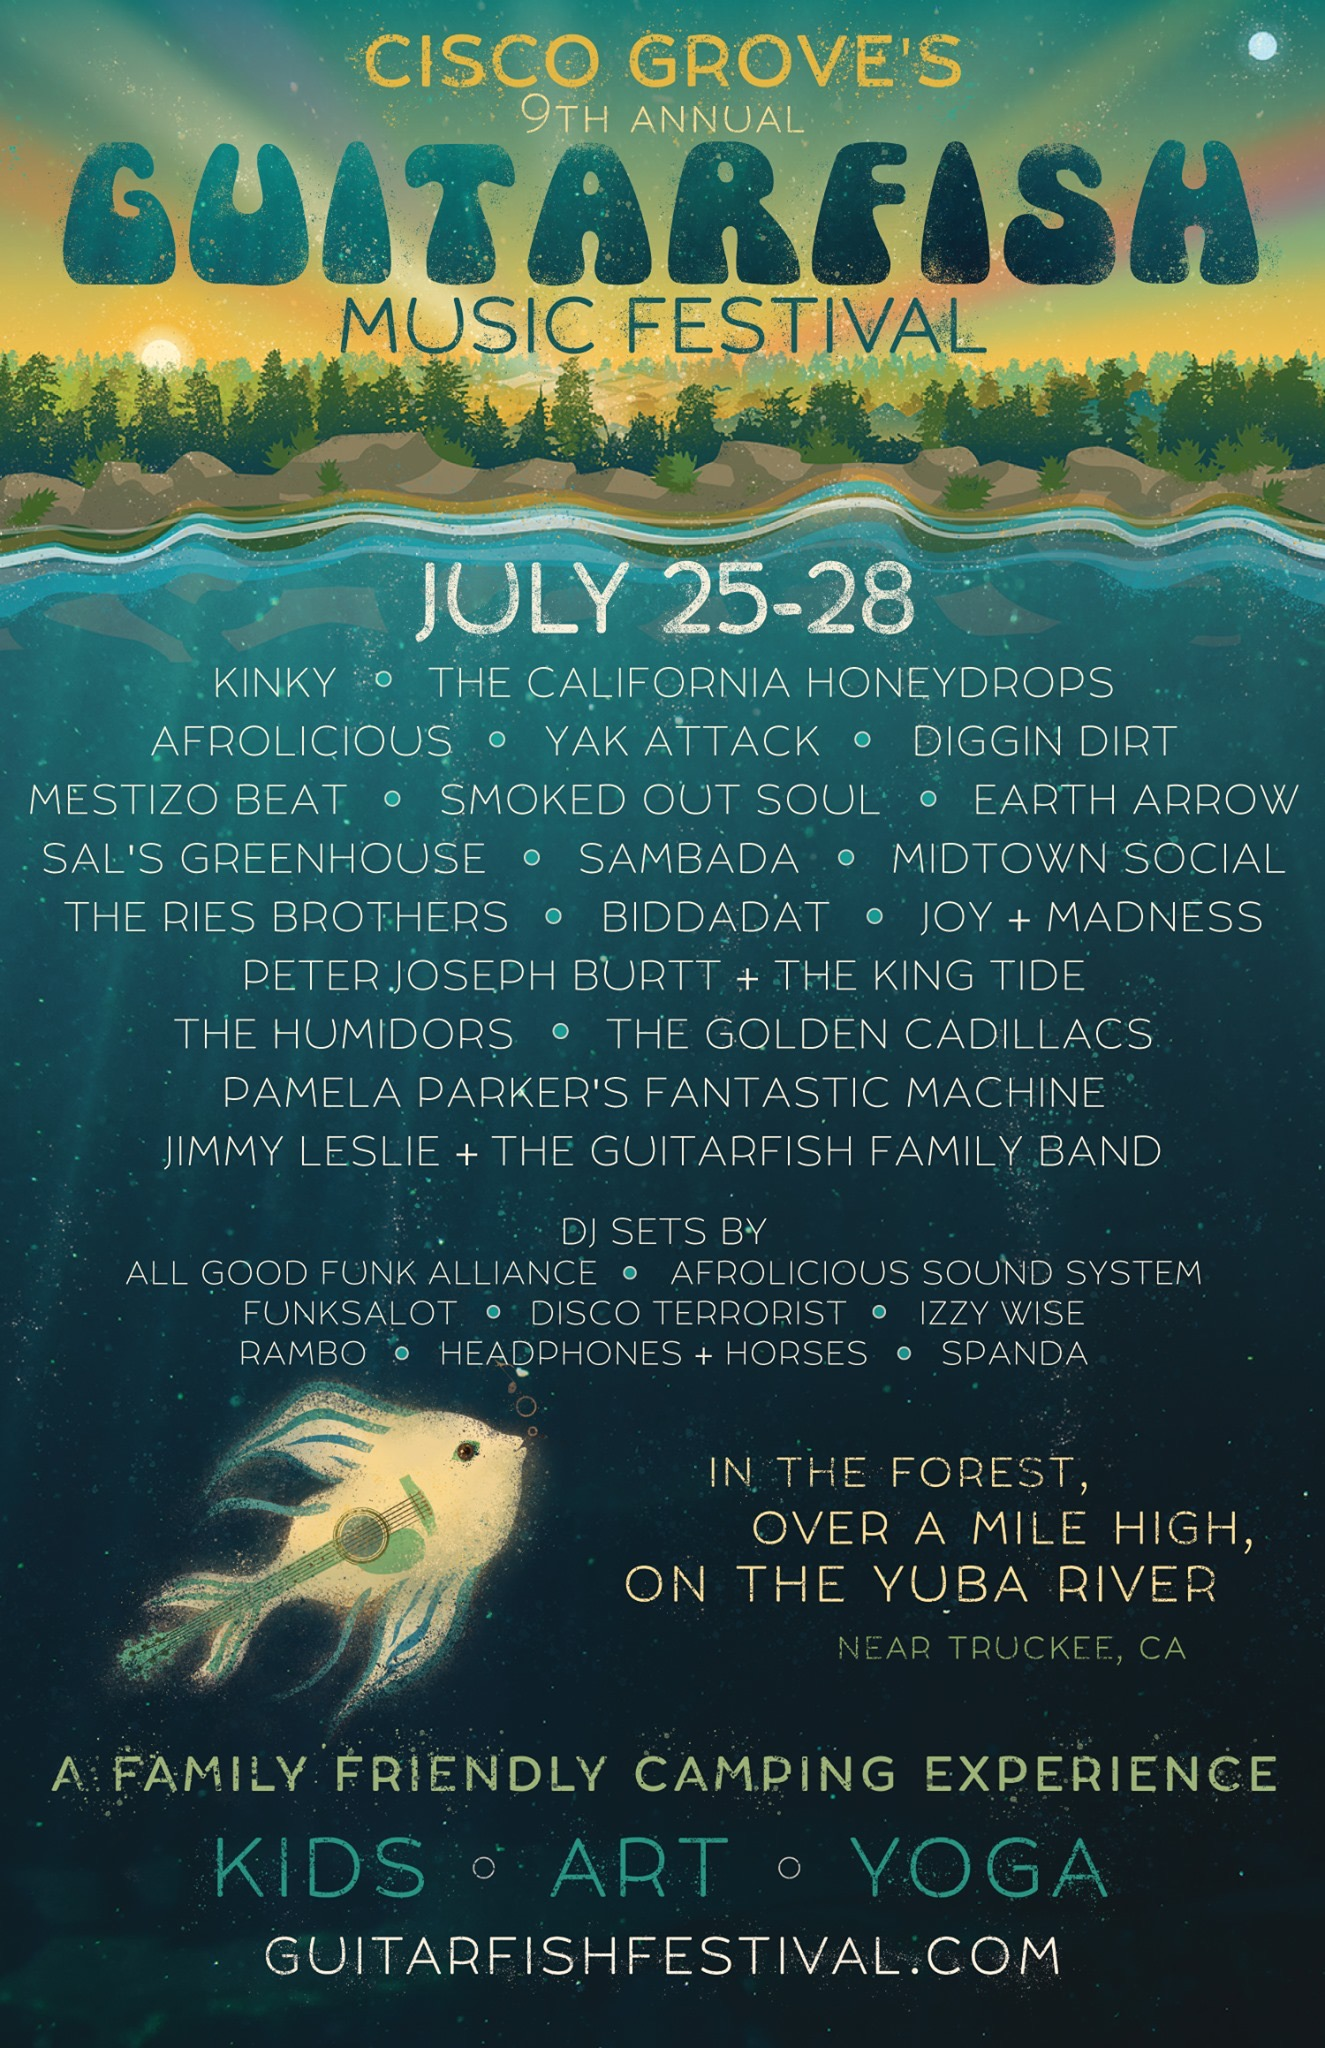 FRI&SAT.JUL.26&27 – GUITARFISH MUSIC FESTIVAL